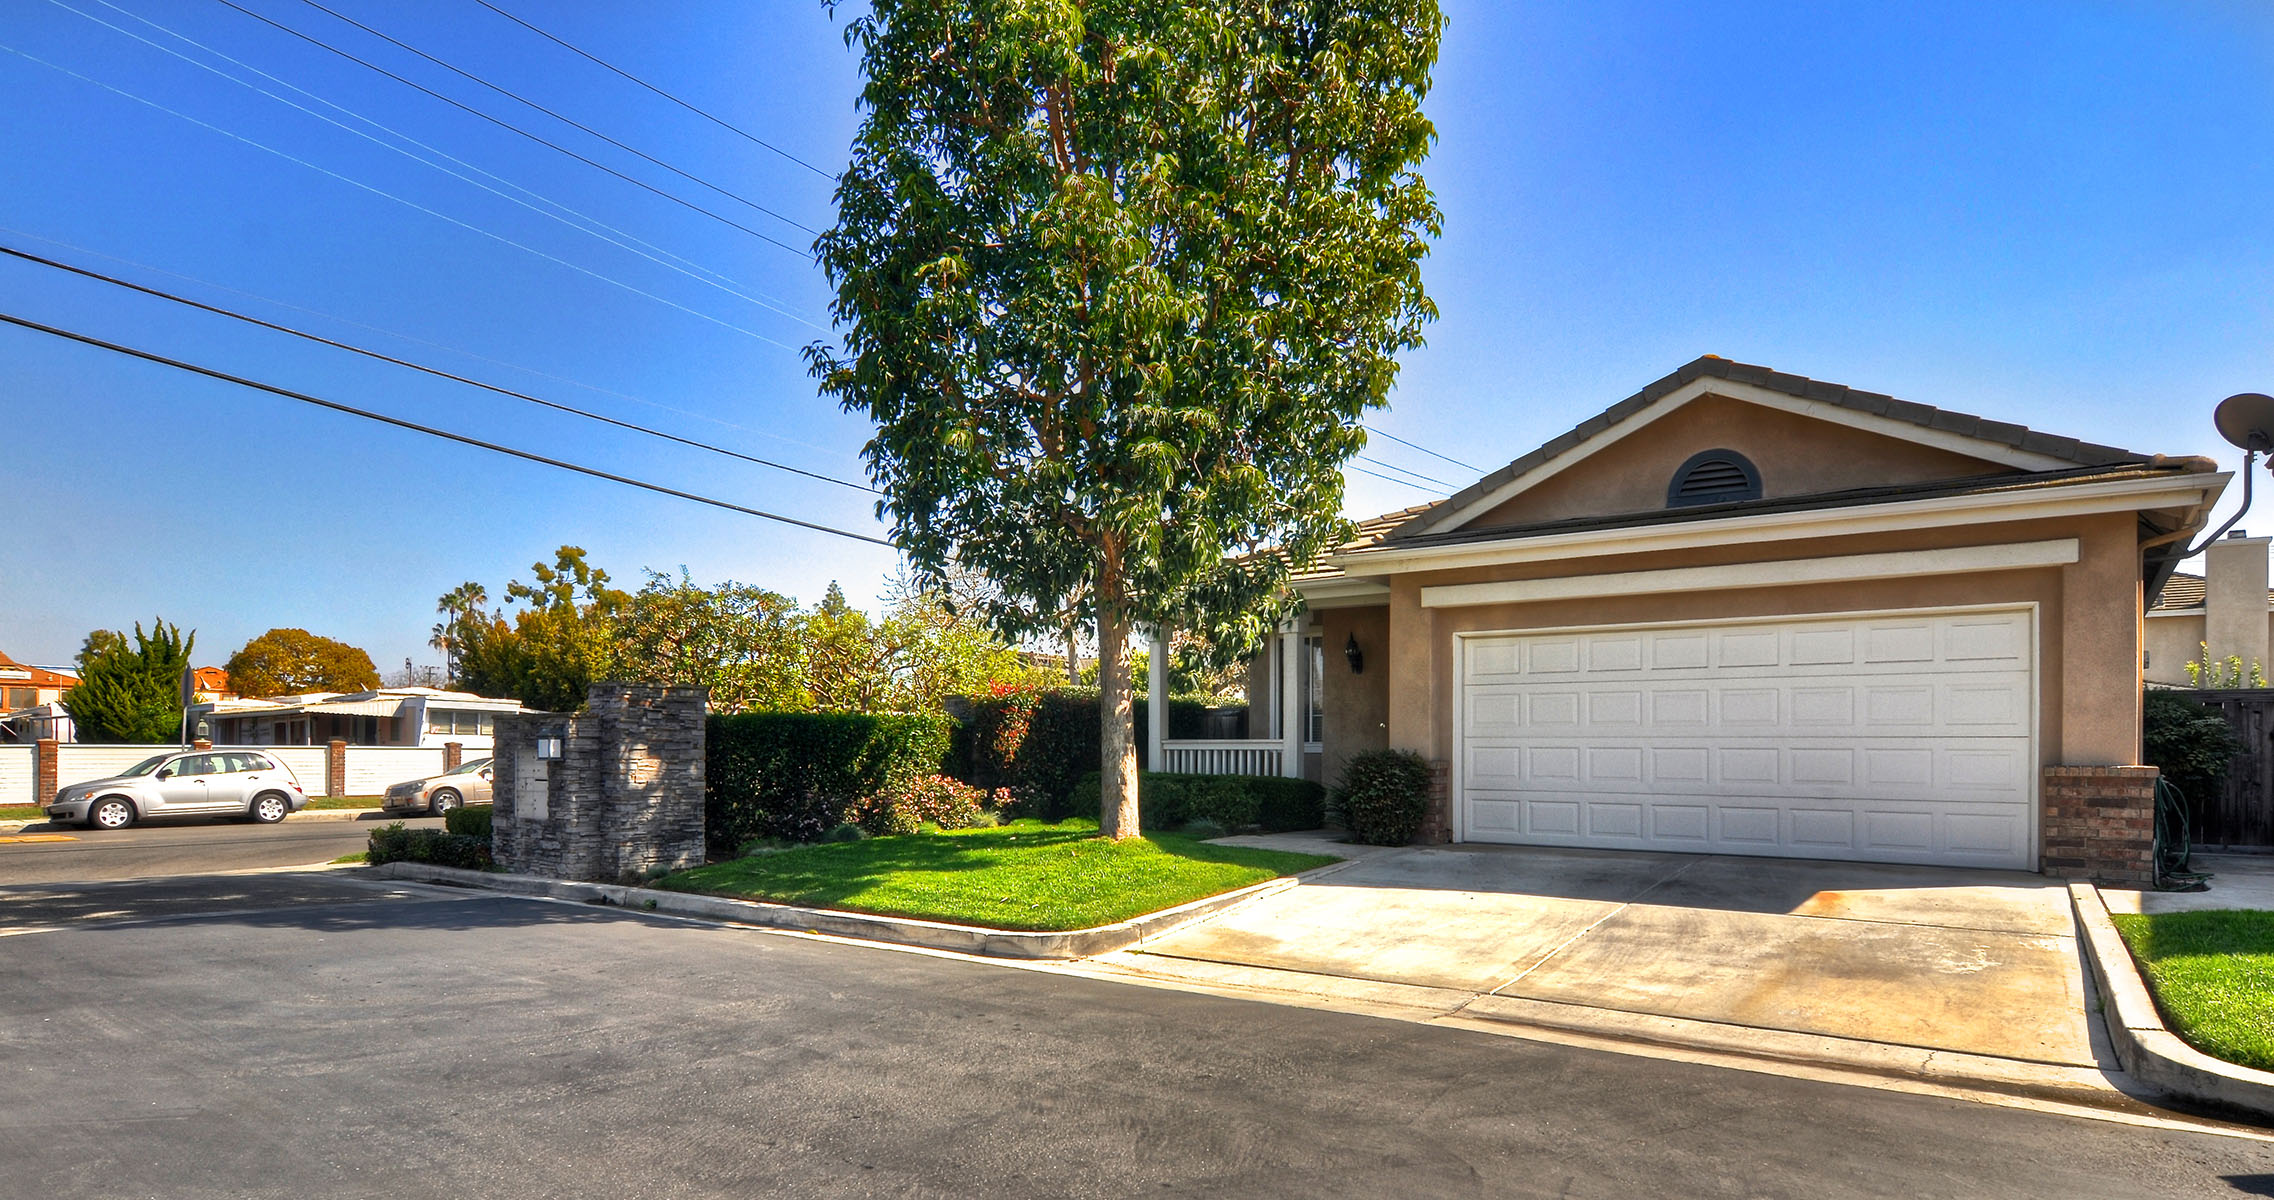 Single Family Home for Sale at 377 21st Street Costa Mesa, California 92627 United States